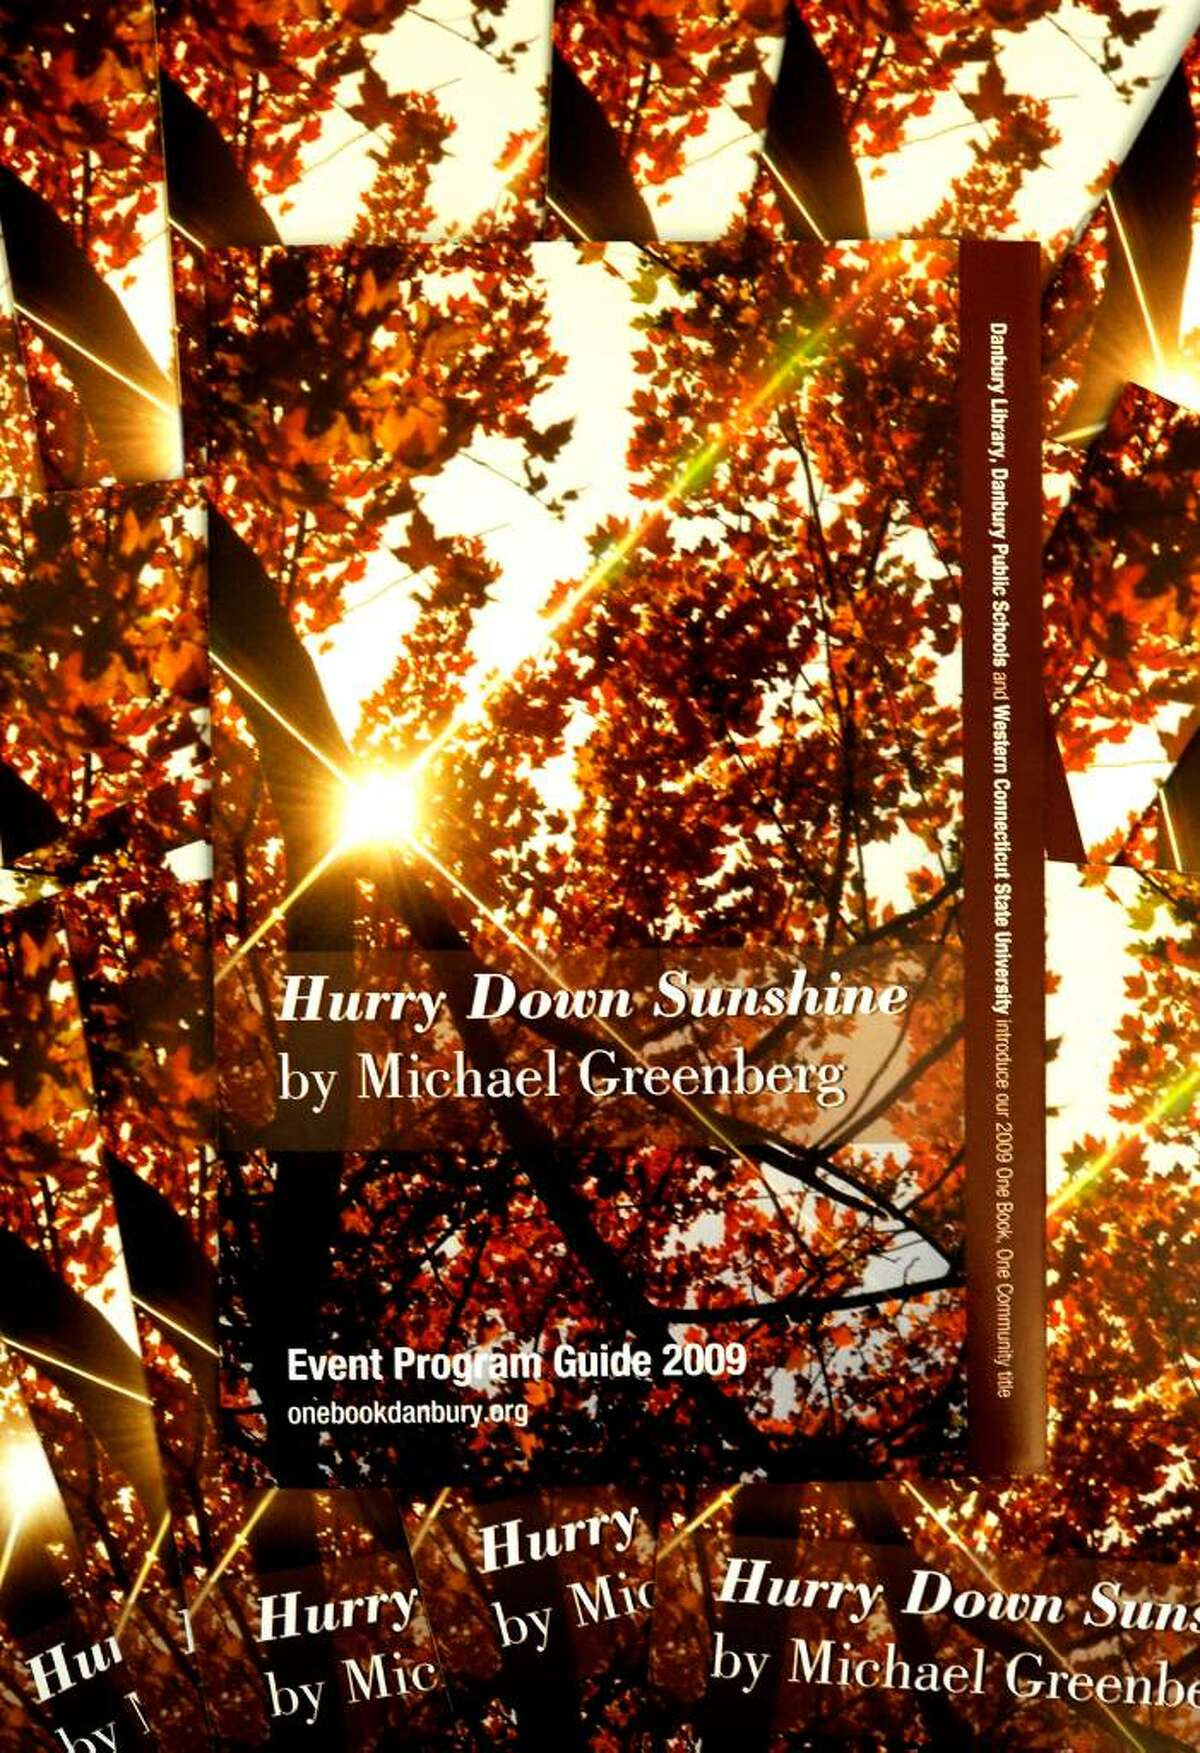 The bookcover of Hurry Down Sunshine, which was announced as the choice for discussion at the One Book, One Community press conference held at the WCSU Hass Library in Danbury on Aug.24, 2009.